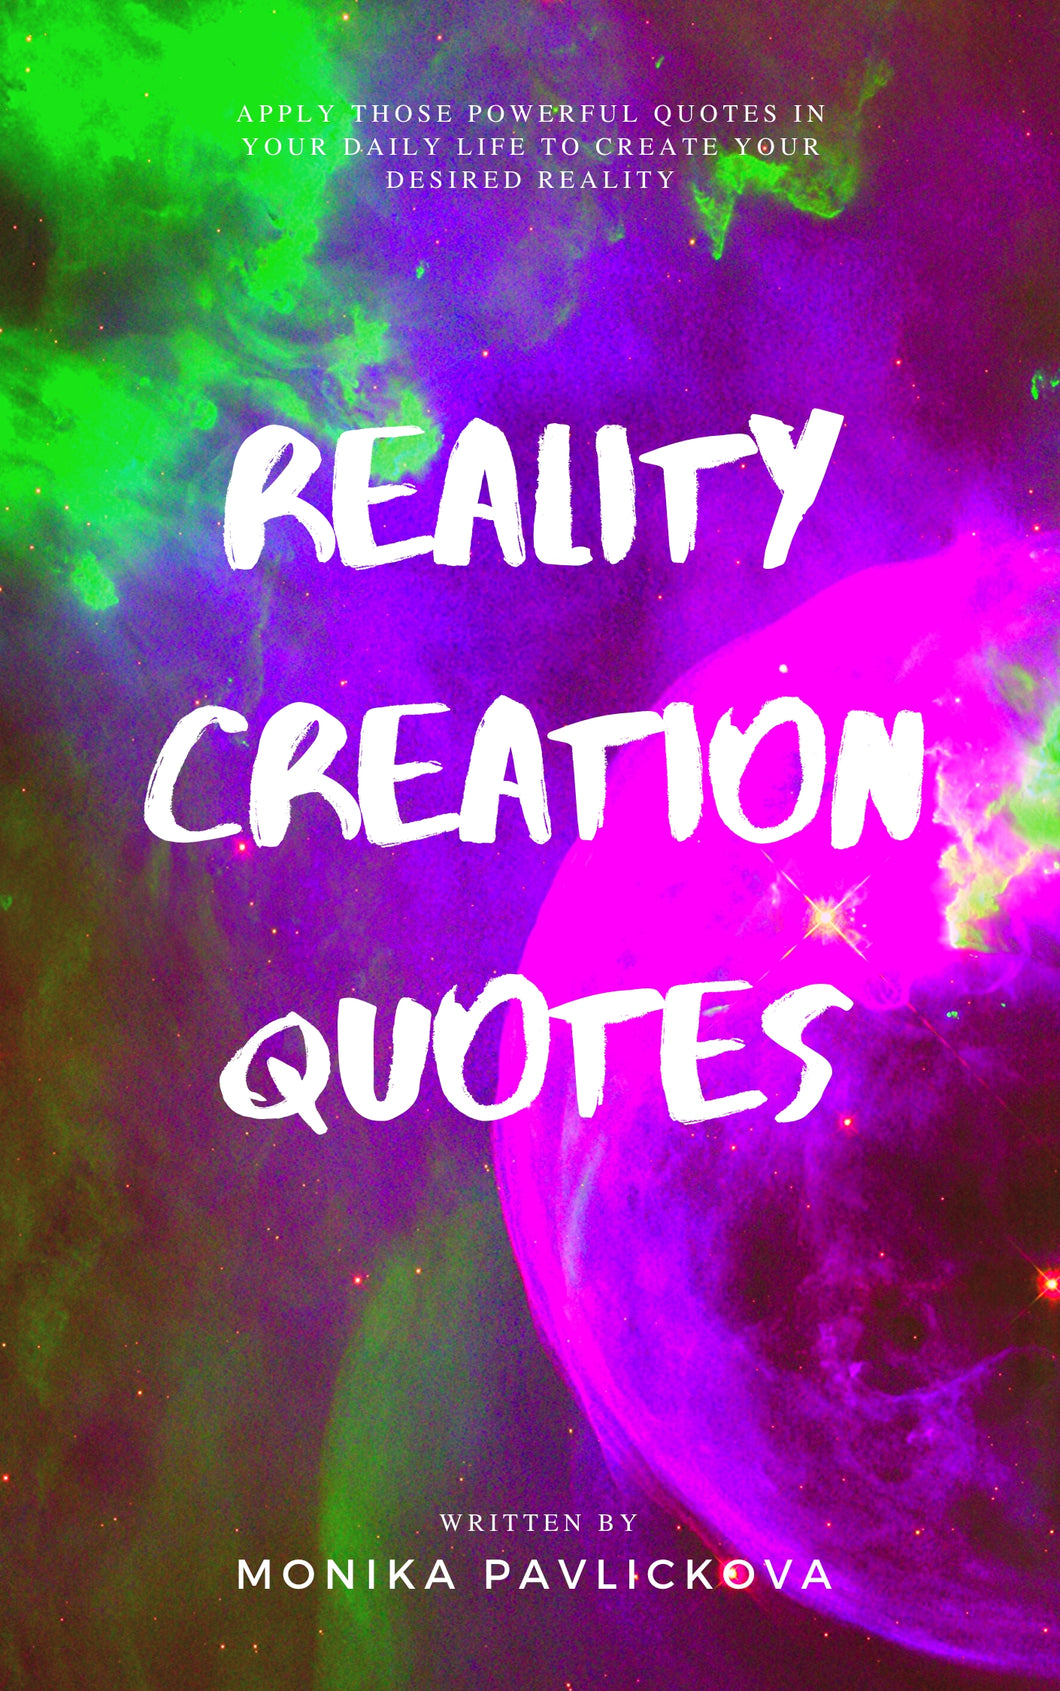 Reality Creation Quotes: Create the Life You Like with These Powerful Reality Creation Quotes that Will Change Your Life! - Monika Pavlickova